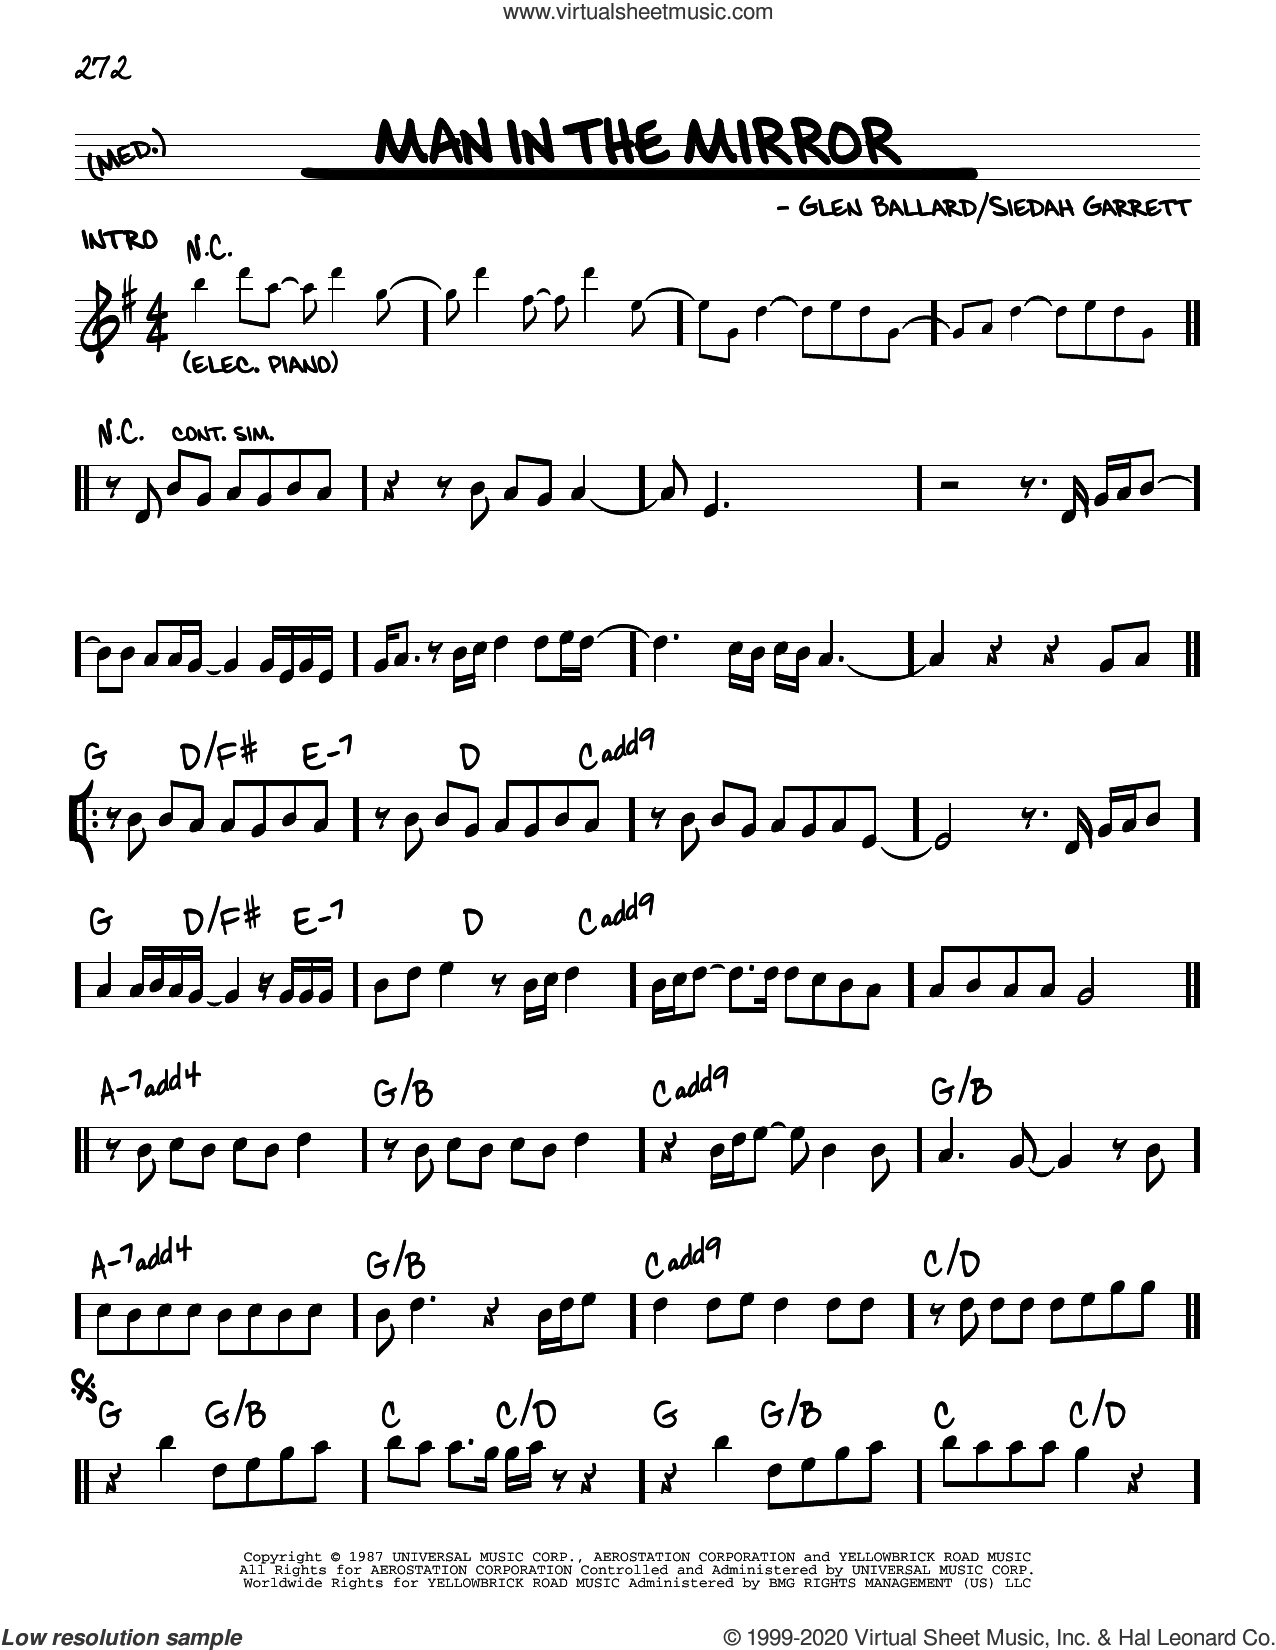 Man In The Mirror sheet music for voice and other instruments (real book) by Michael Jackson, Glen Ballard and Siedah Garrett, intermediate skill level